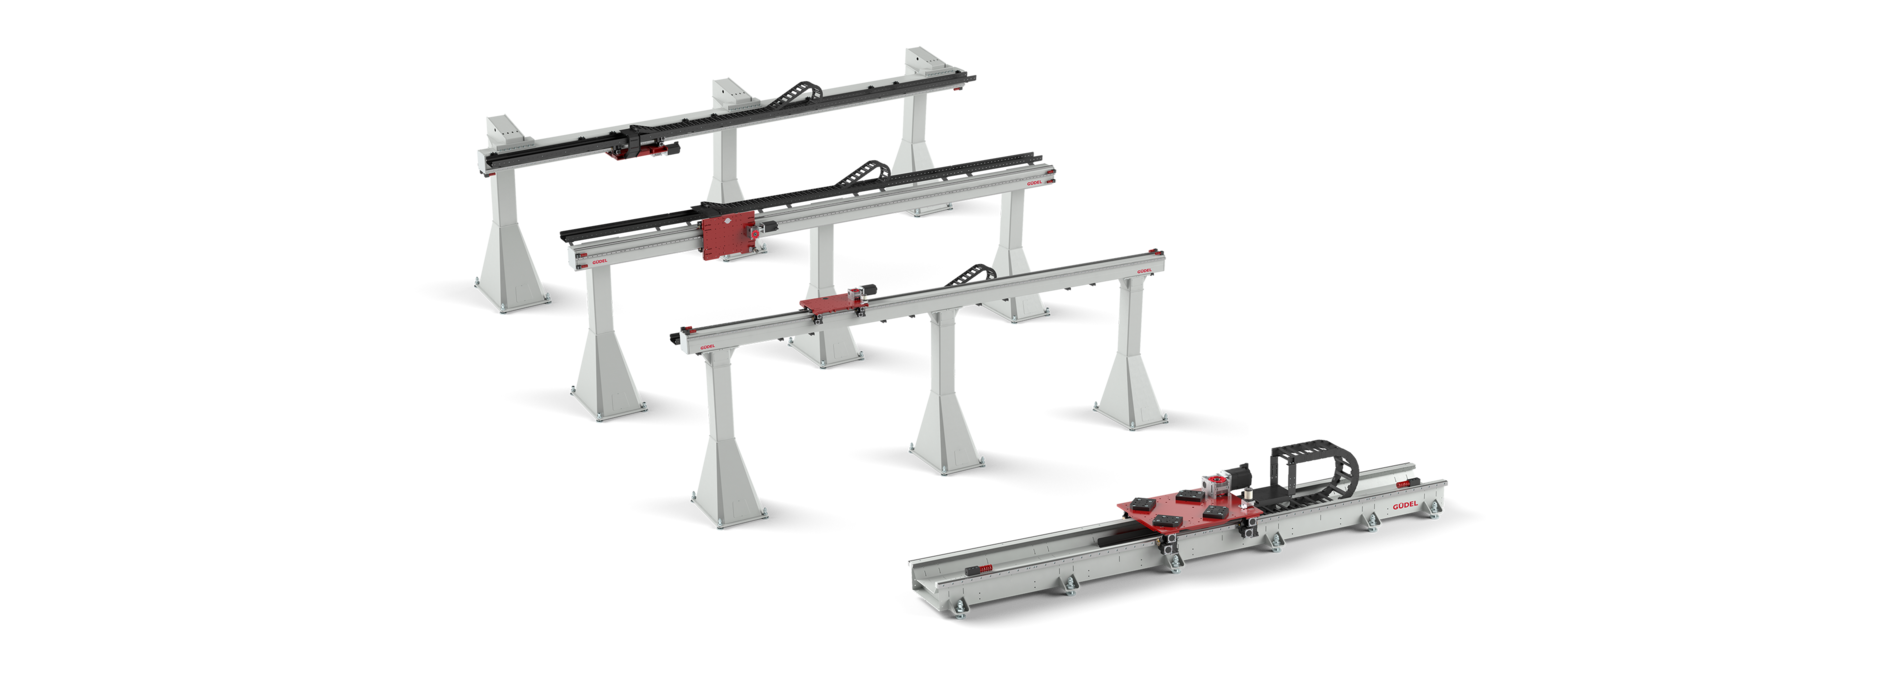 linear axis, single-axis, multi-axis, rack drive, belt drive, highly dynamically, very precisely, extremely quietly, robot rtu, rtu, gantry robot, gantry system, cnc gantry | © Güdel Group AG